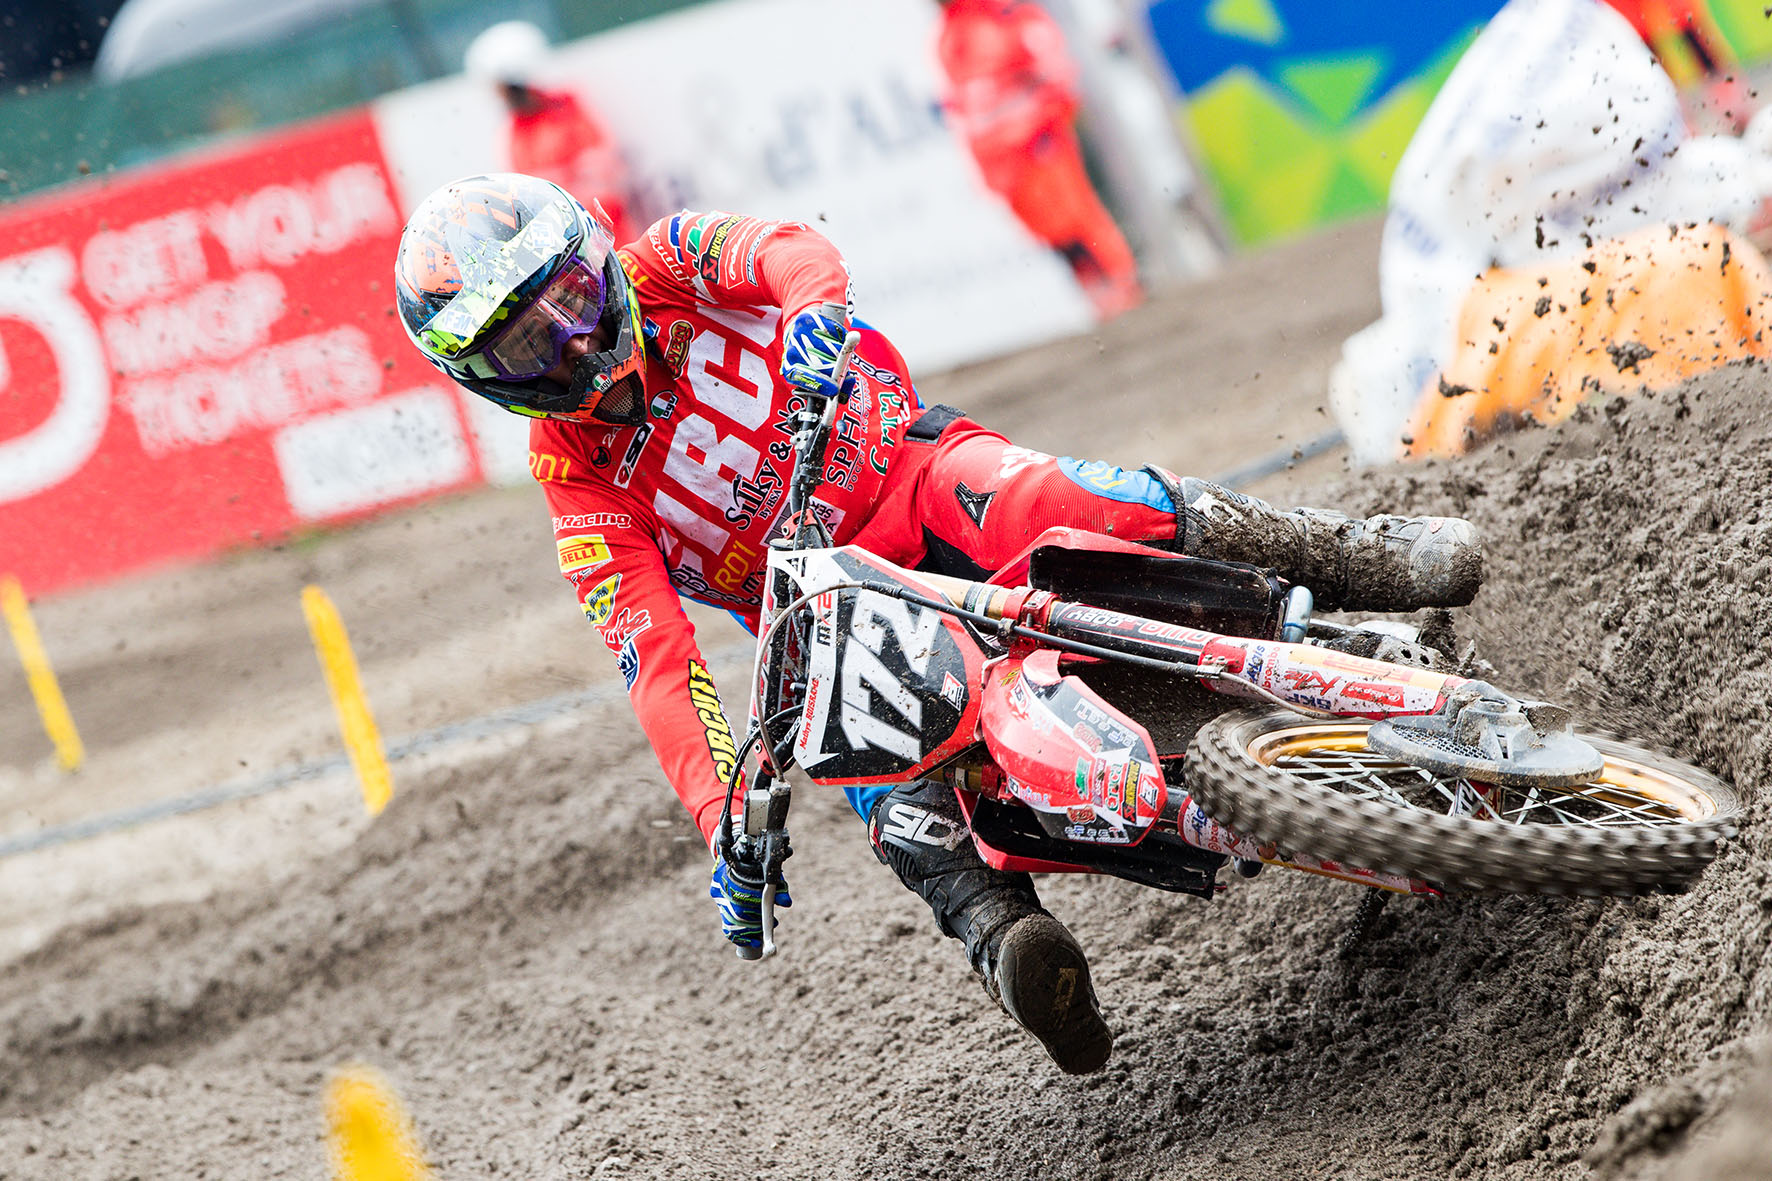 MOTOCROSS WORLD CHAMPIONSHIP PREVIEW GP of LOMBARDIA